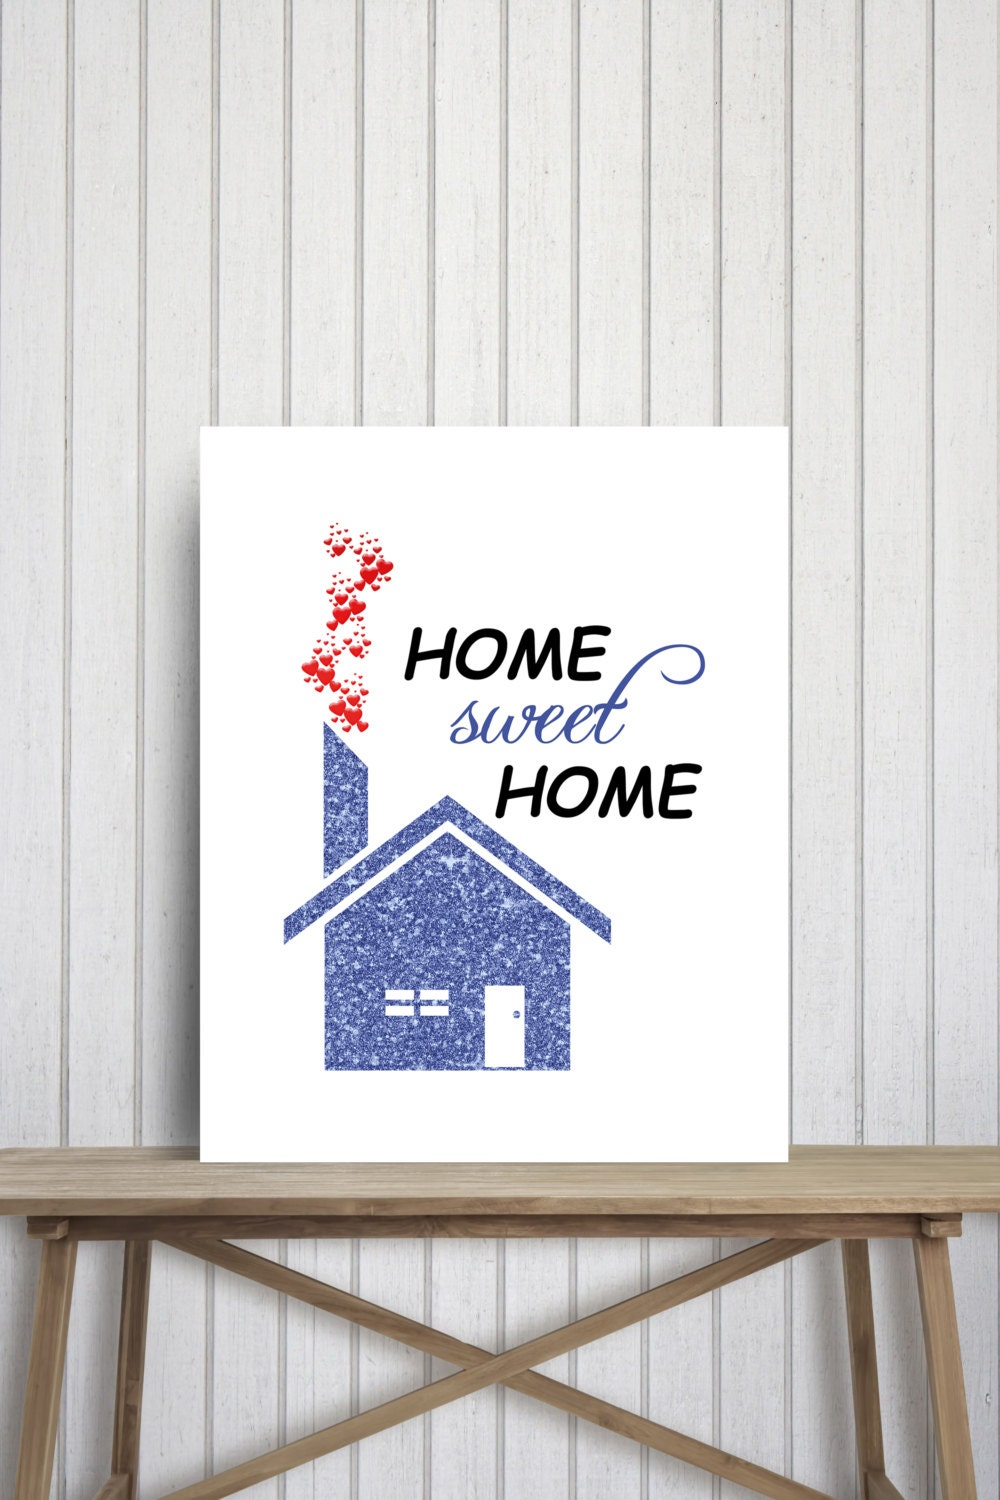 Blue glitter wall decor home sweet home art printable poster Home sweet home wall decor